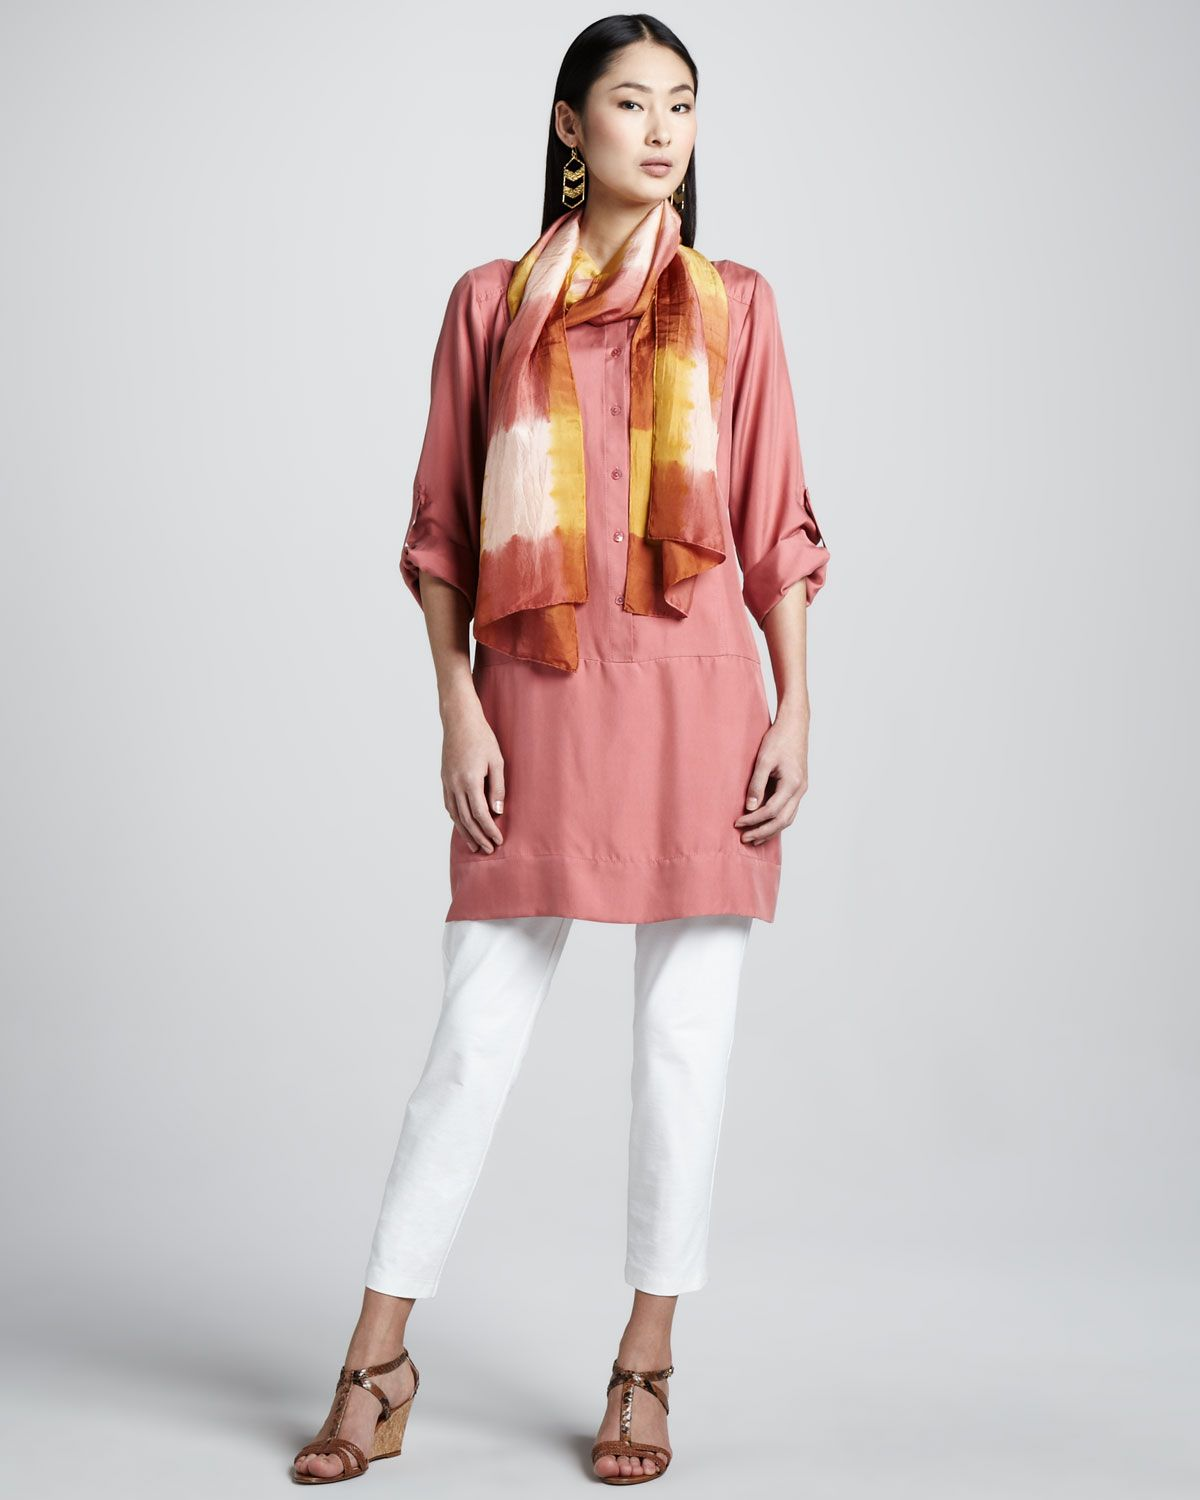 http://ncrni.com/eileen-fisher-slim-ankle-pants-tunic-dress-silk-shibori-scarf-petite-p-9488.html